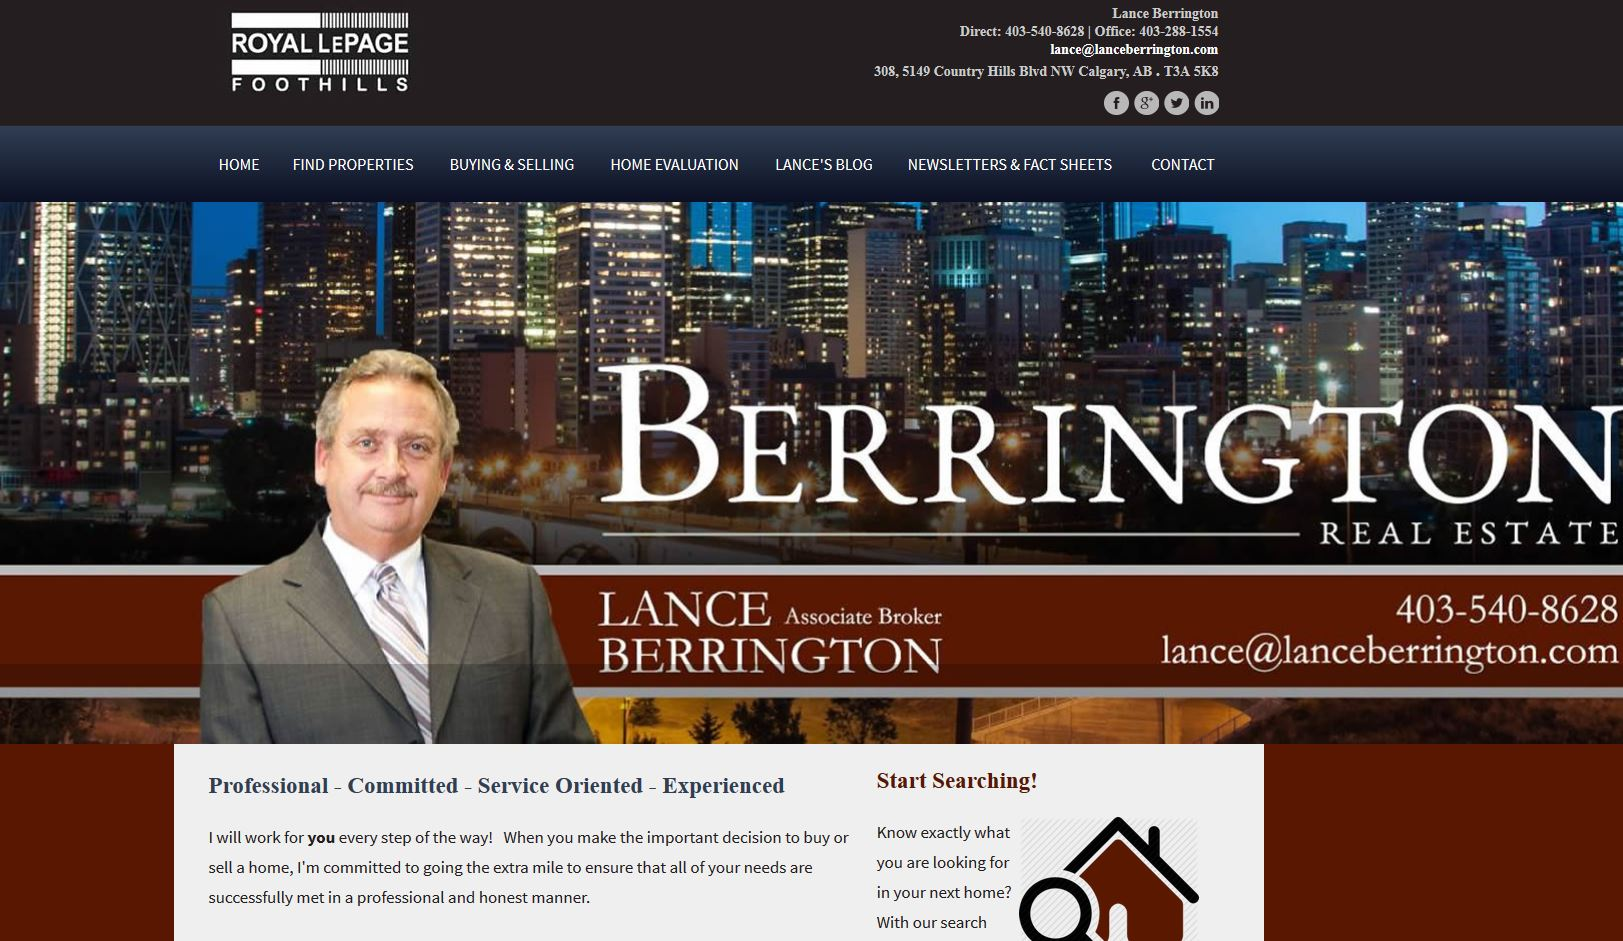 Berrington Real Estate